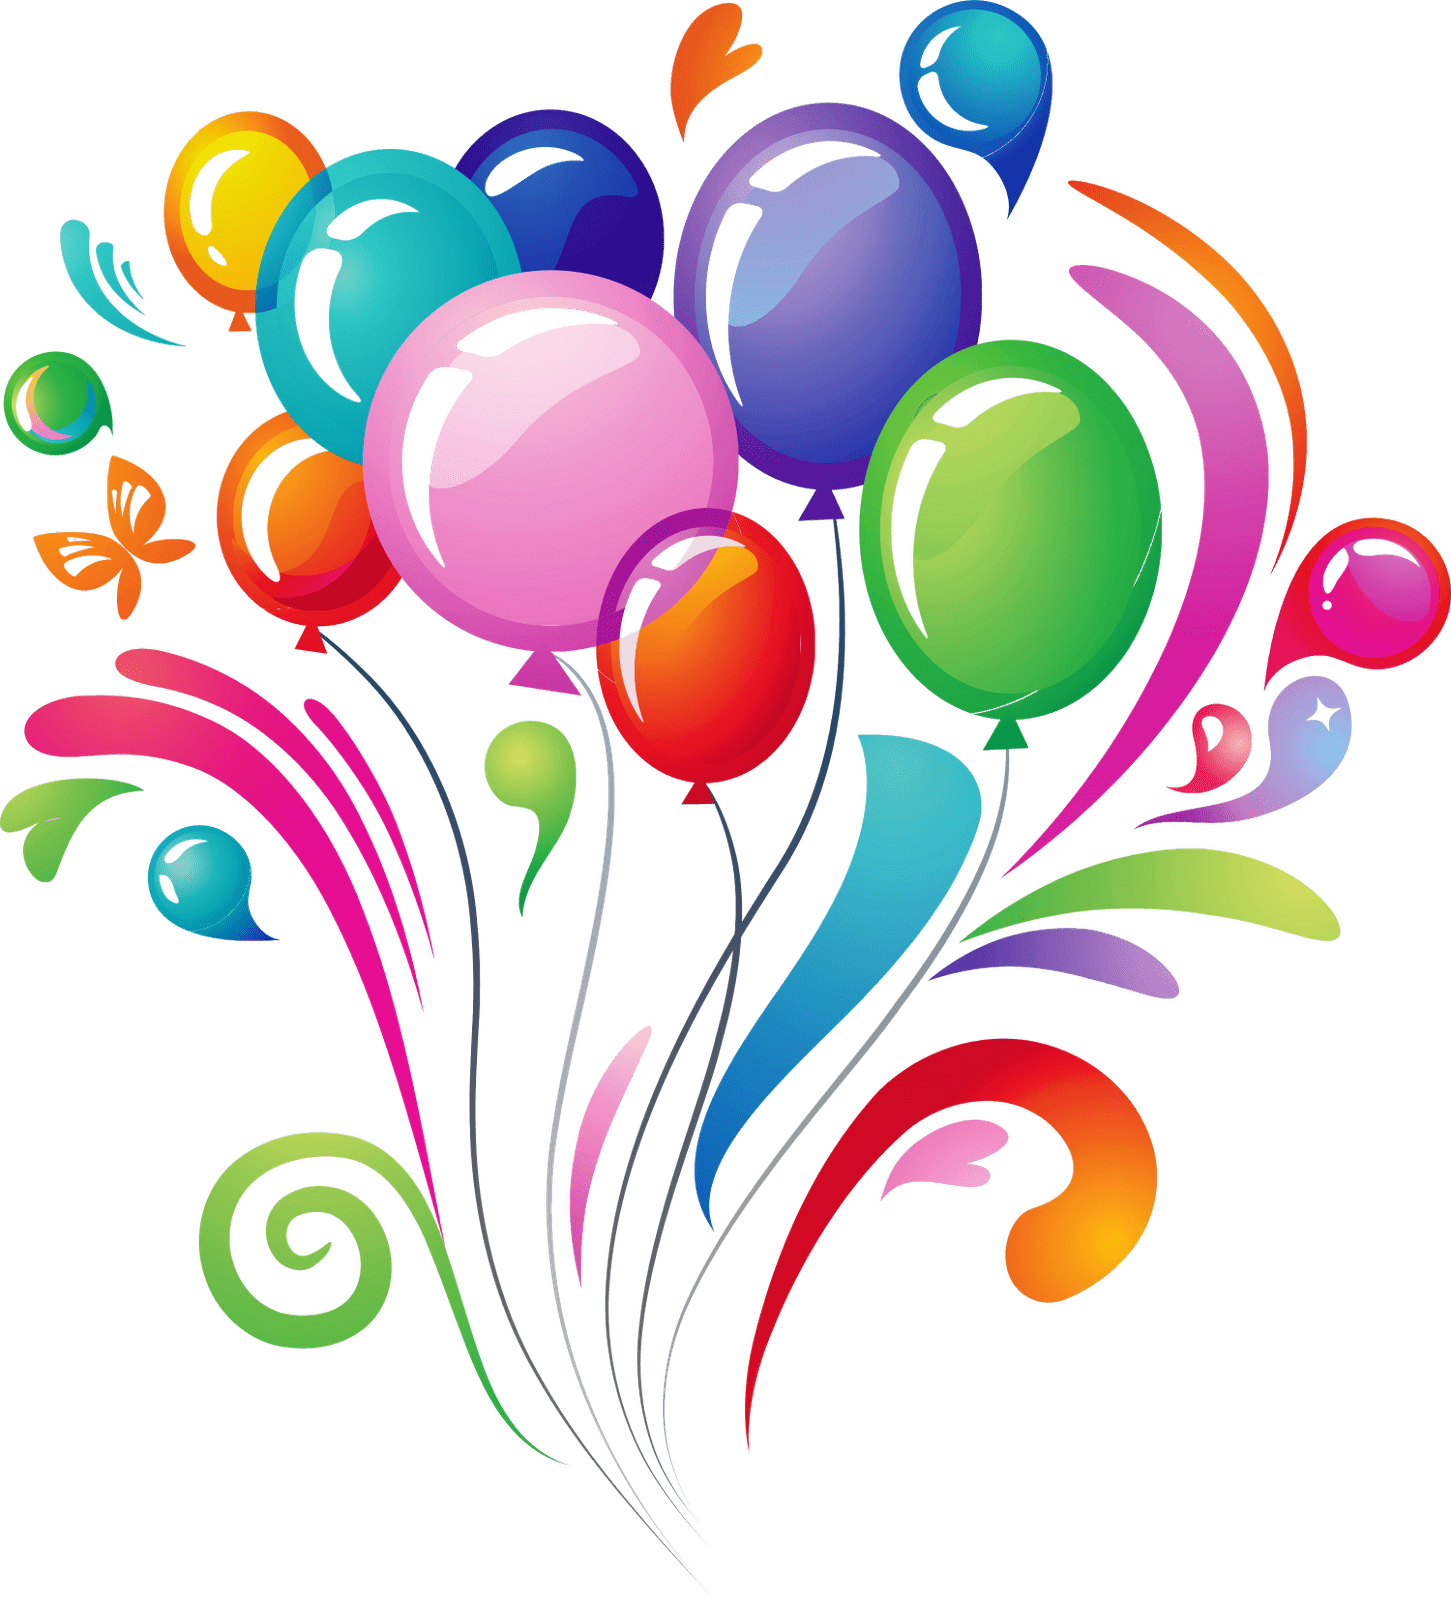 Happy birthday balloons png transparent background. Explosion stickpng